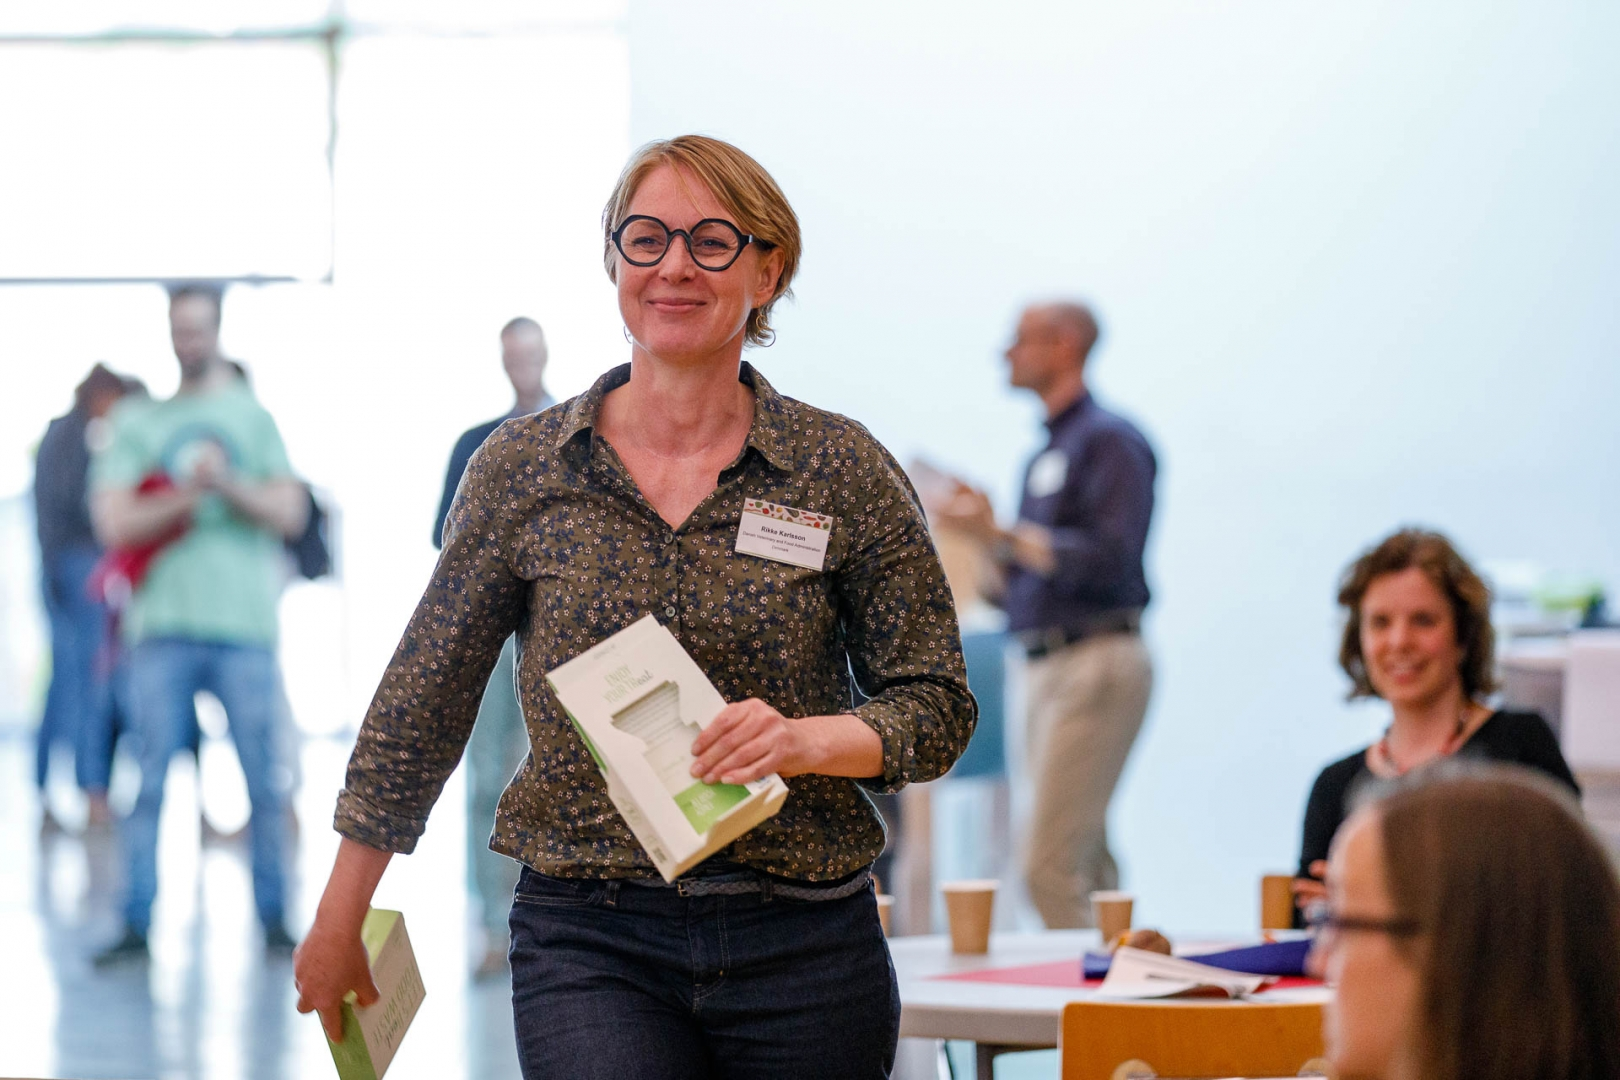 The only Danish conference participant Rikke Karlsson promised to transfer the second prize for the TreatBox® to Danish designer Jakob Thomasen who had made his contest submission by mail.